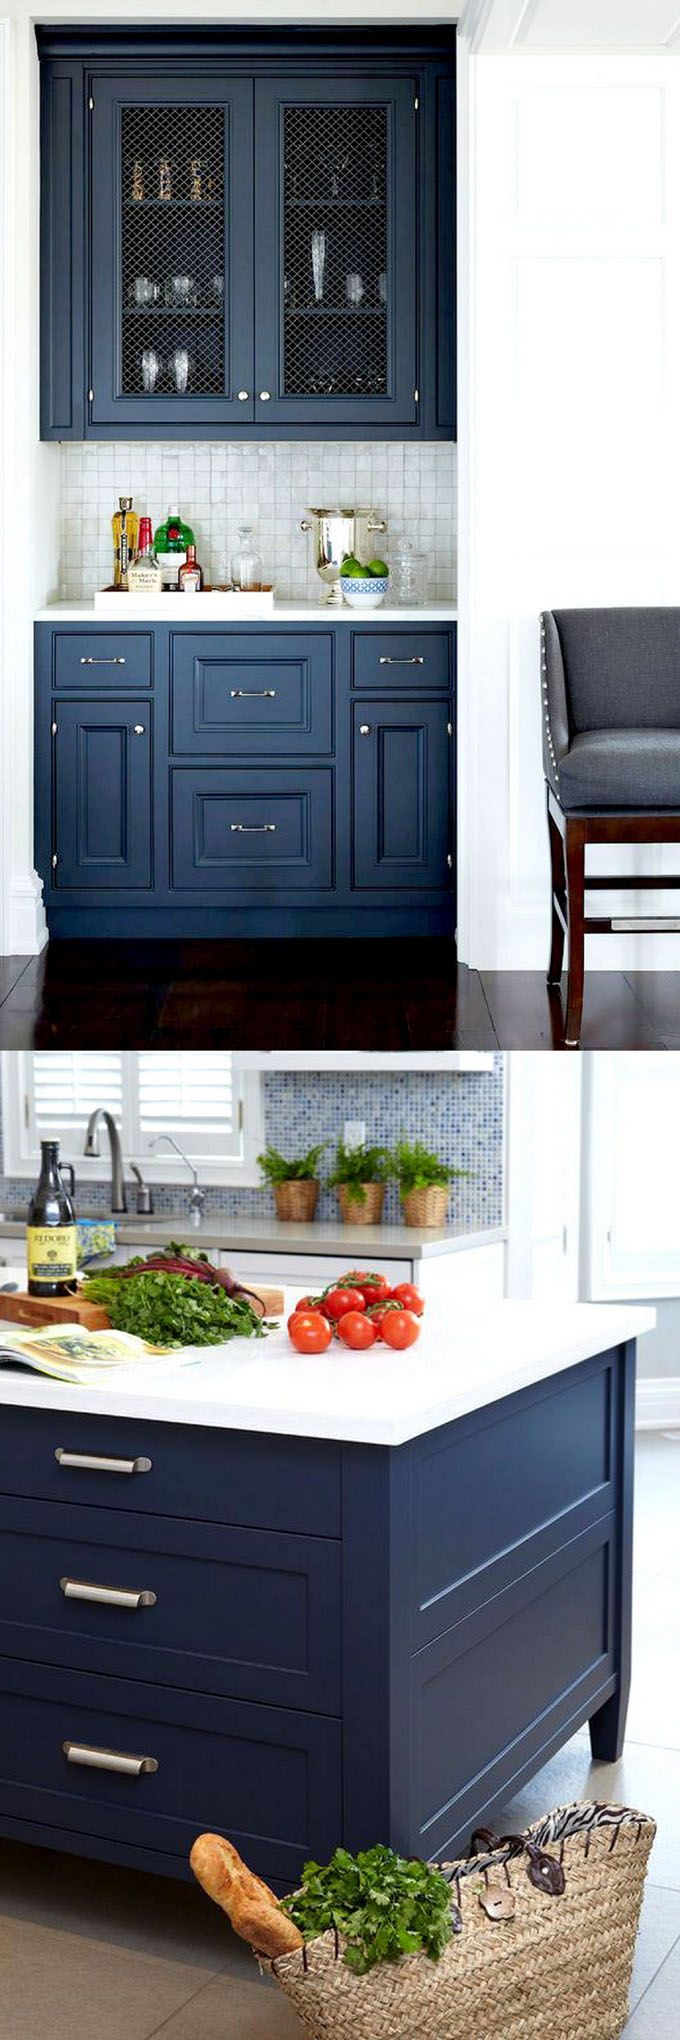 Kitchen Cabinets Color Ideas best 20+ navy kitchen ideas on pinterest | navy kitchen cabinets